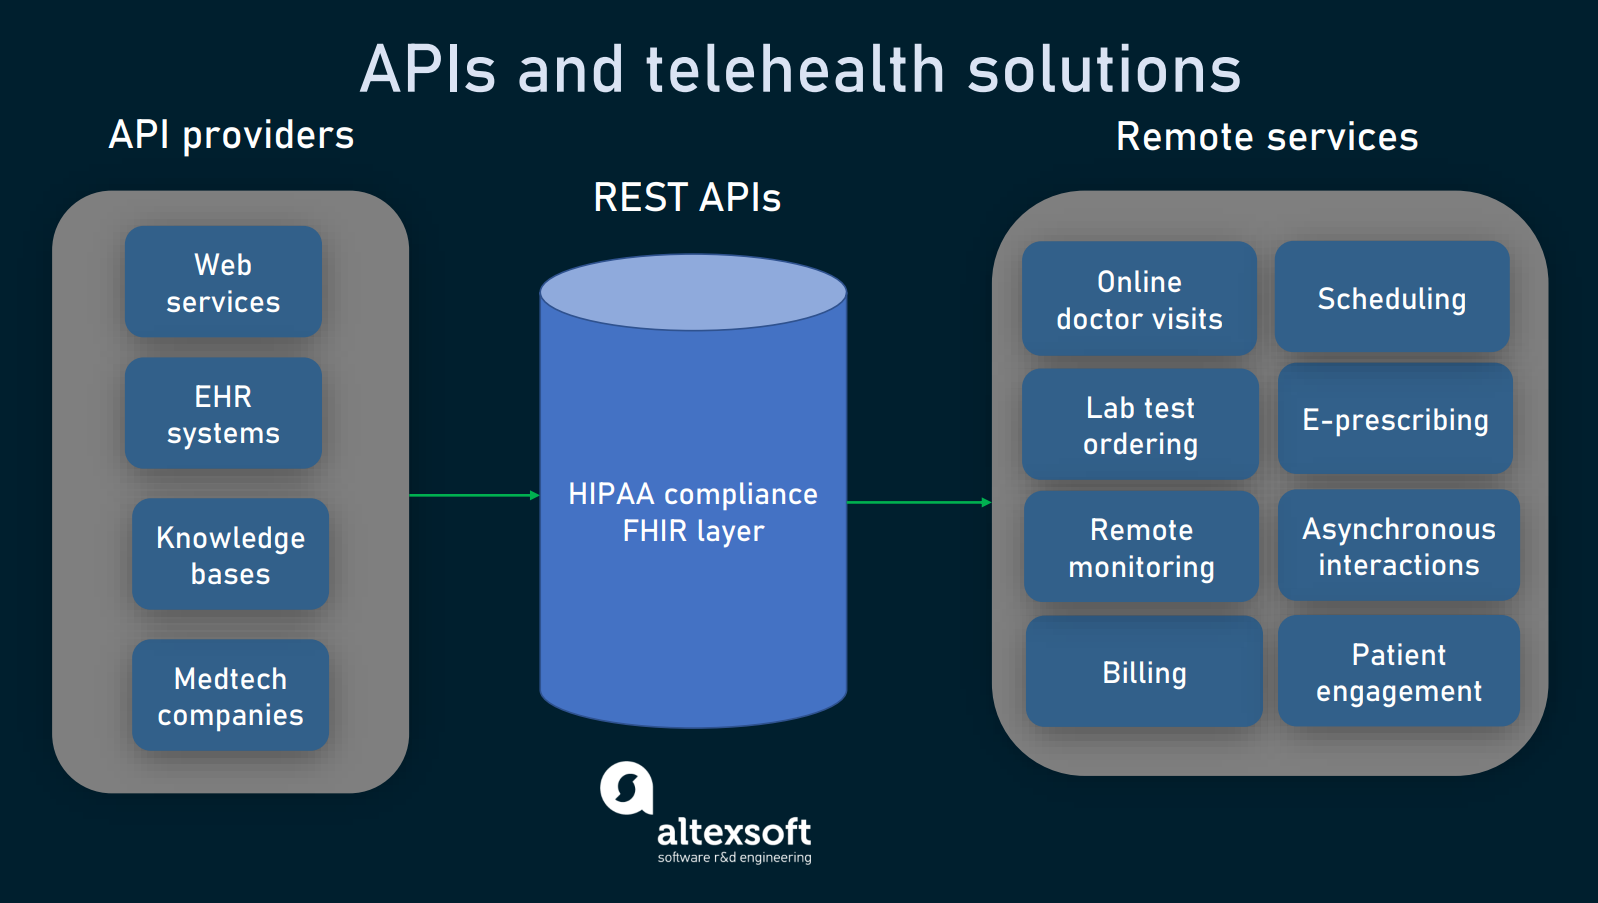 APIs and telehealth